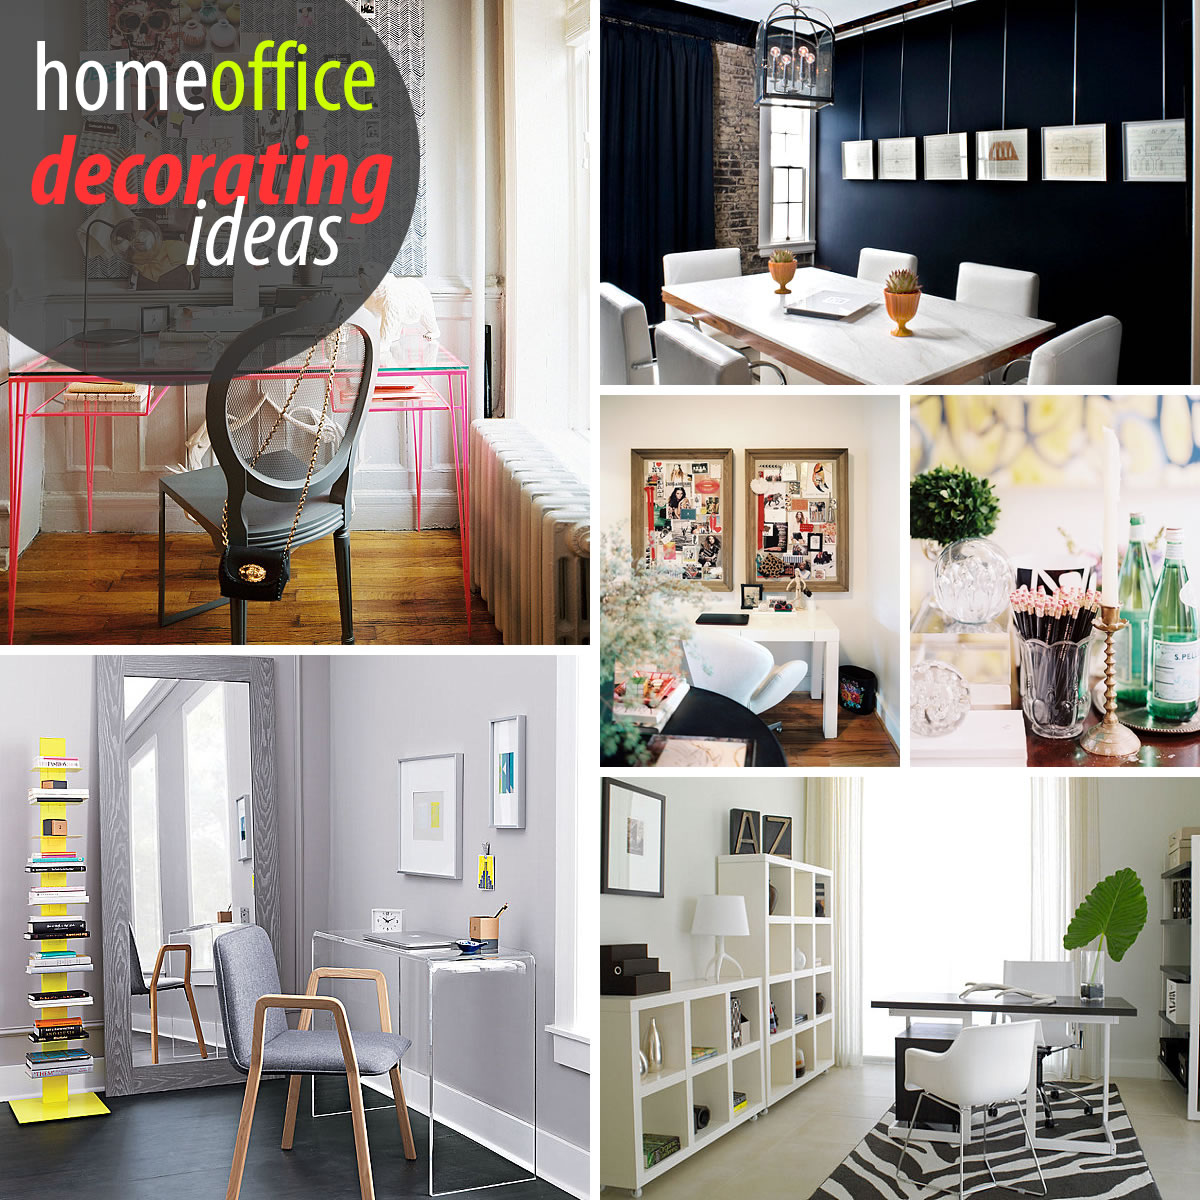 Creative home office decorating ideas for Decorating work office ideas